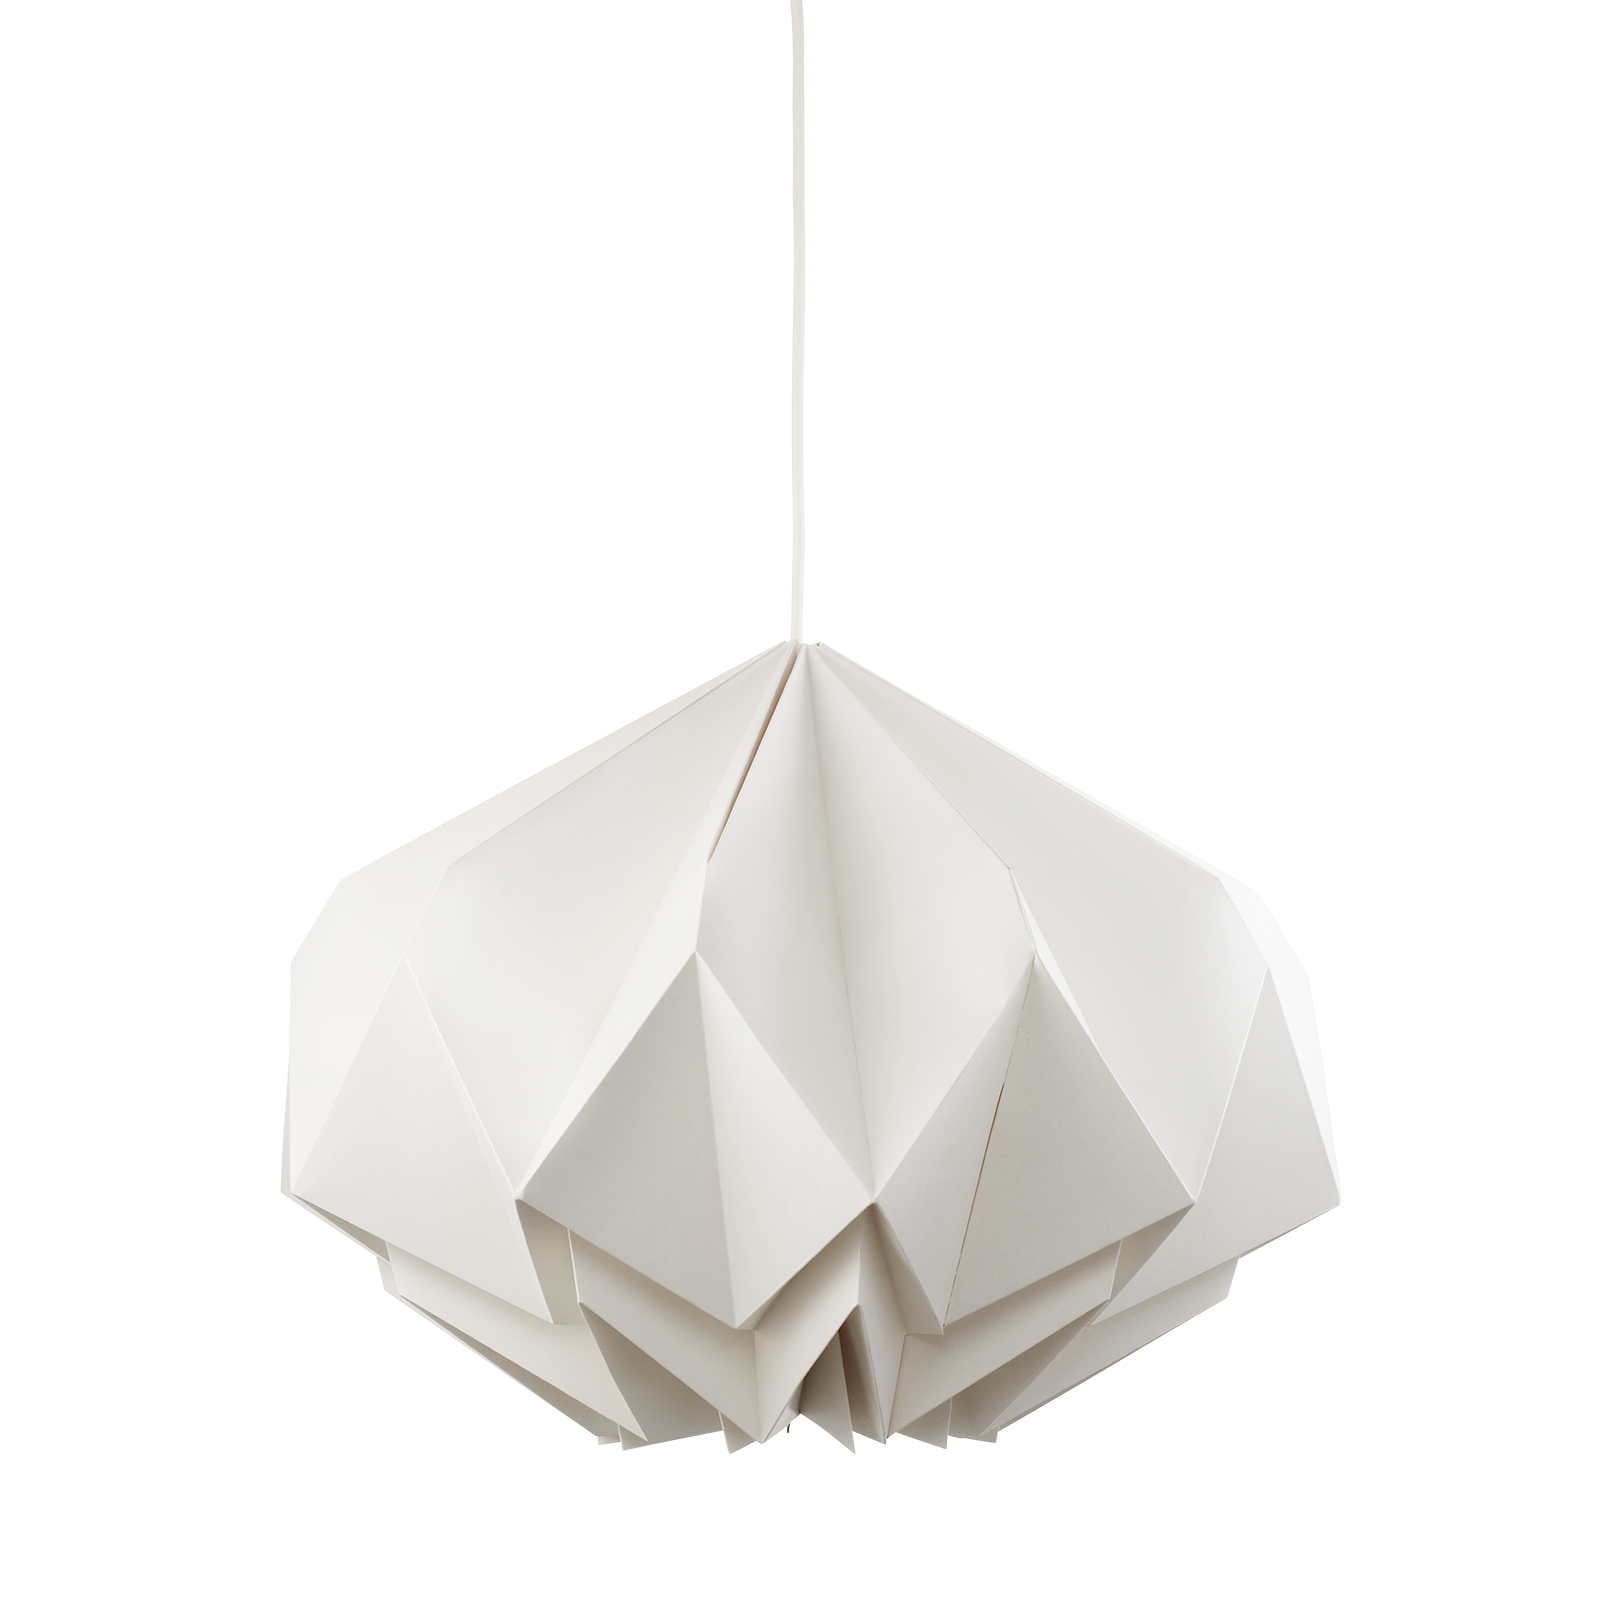 Diamond pendel designed by Benny Frandsen It s made of thick paper